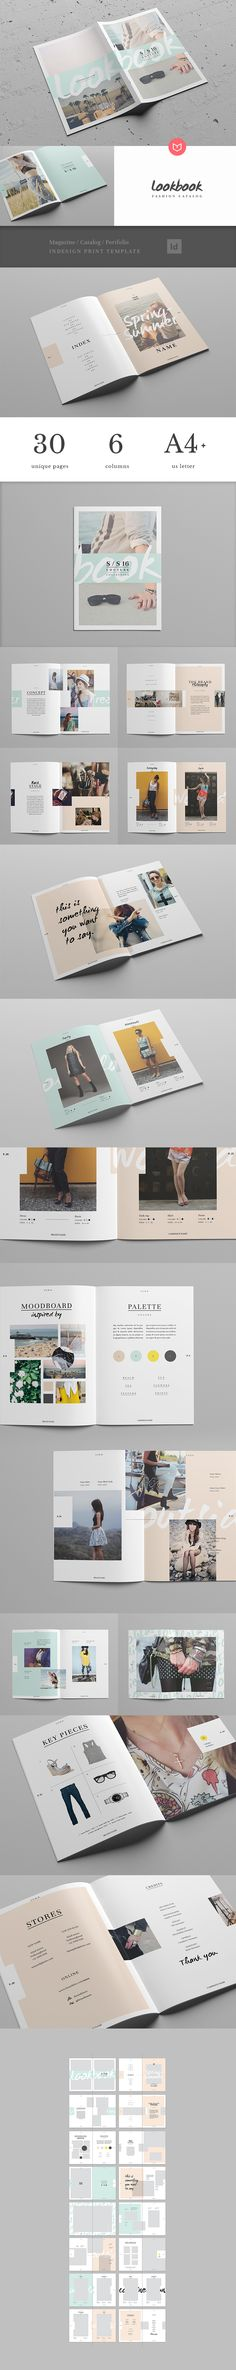 59 new ideas fashion editorial design magazine texts Design Set, Web Design, Layout Design, Graphic Design Layouts, Lookbook Layout, Lookbook Design, Design Editorial, Editorial Layout, Typography Design